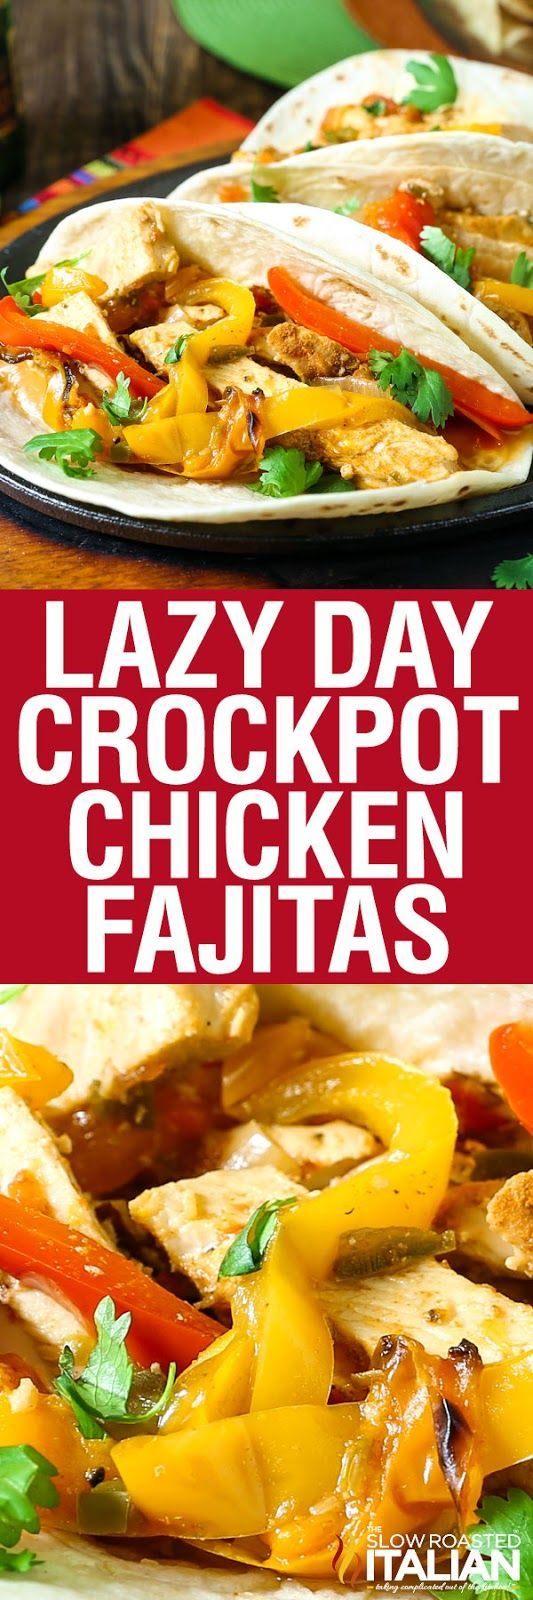 Crockpot Chicken Fajitas Are Perfect For A Fabulous No Fuss Dinner This Simple Recipe Comes Together In A Recipes Crockpot Chicken Chicken Slow Cooker Recipes